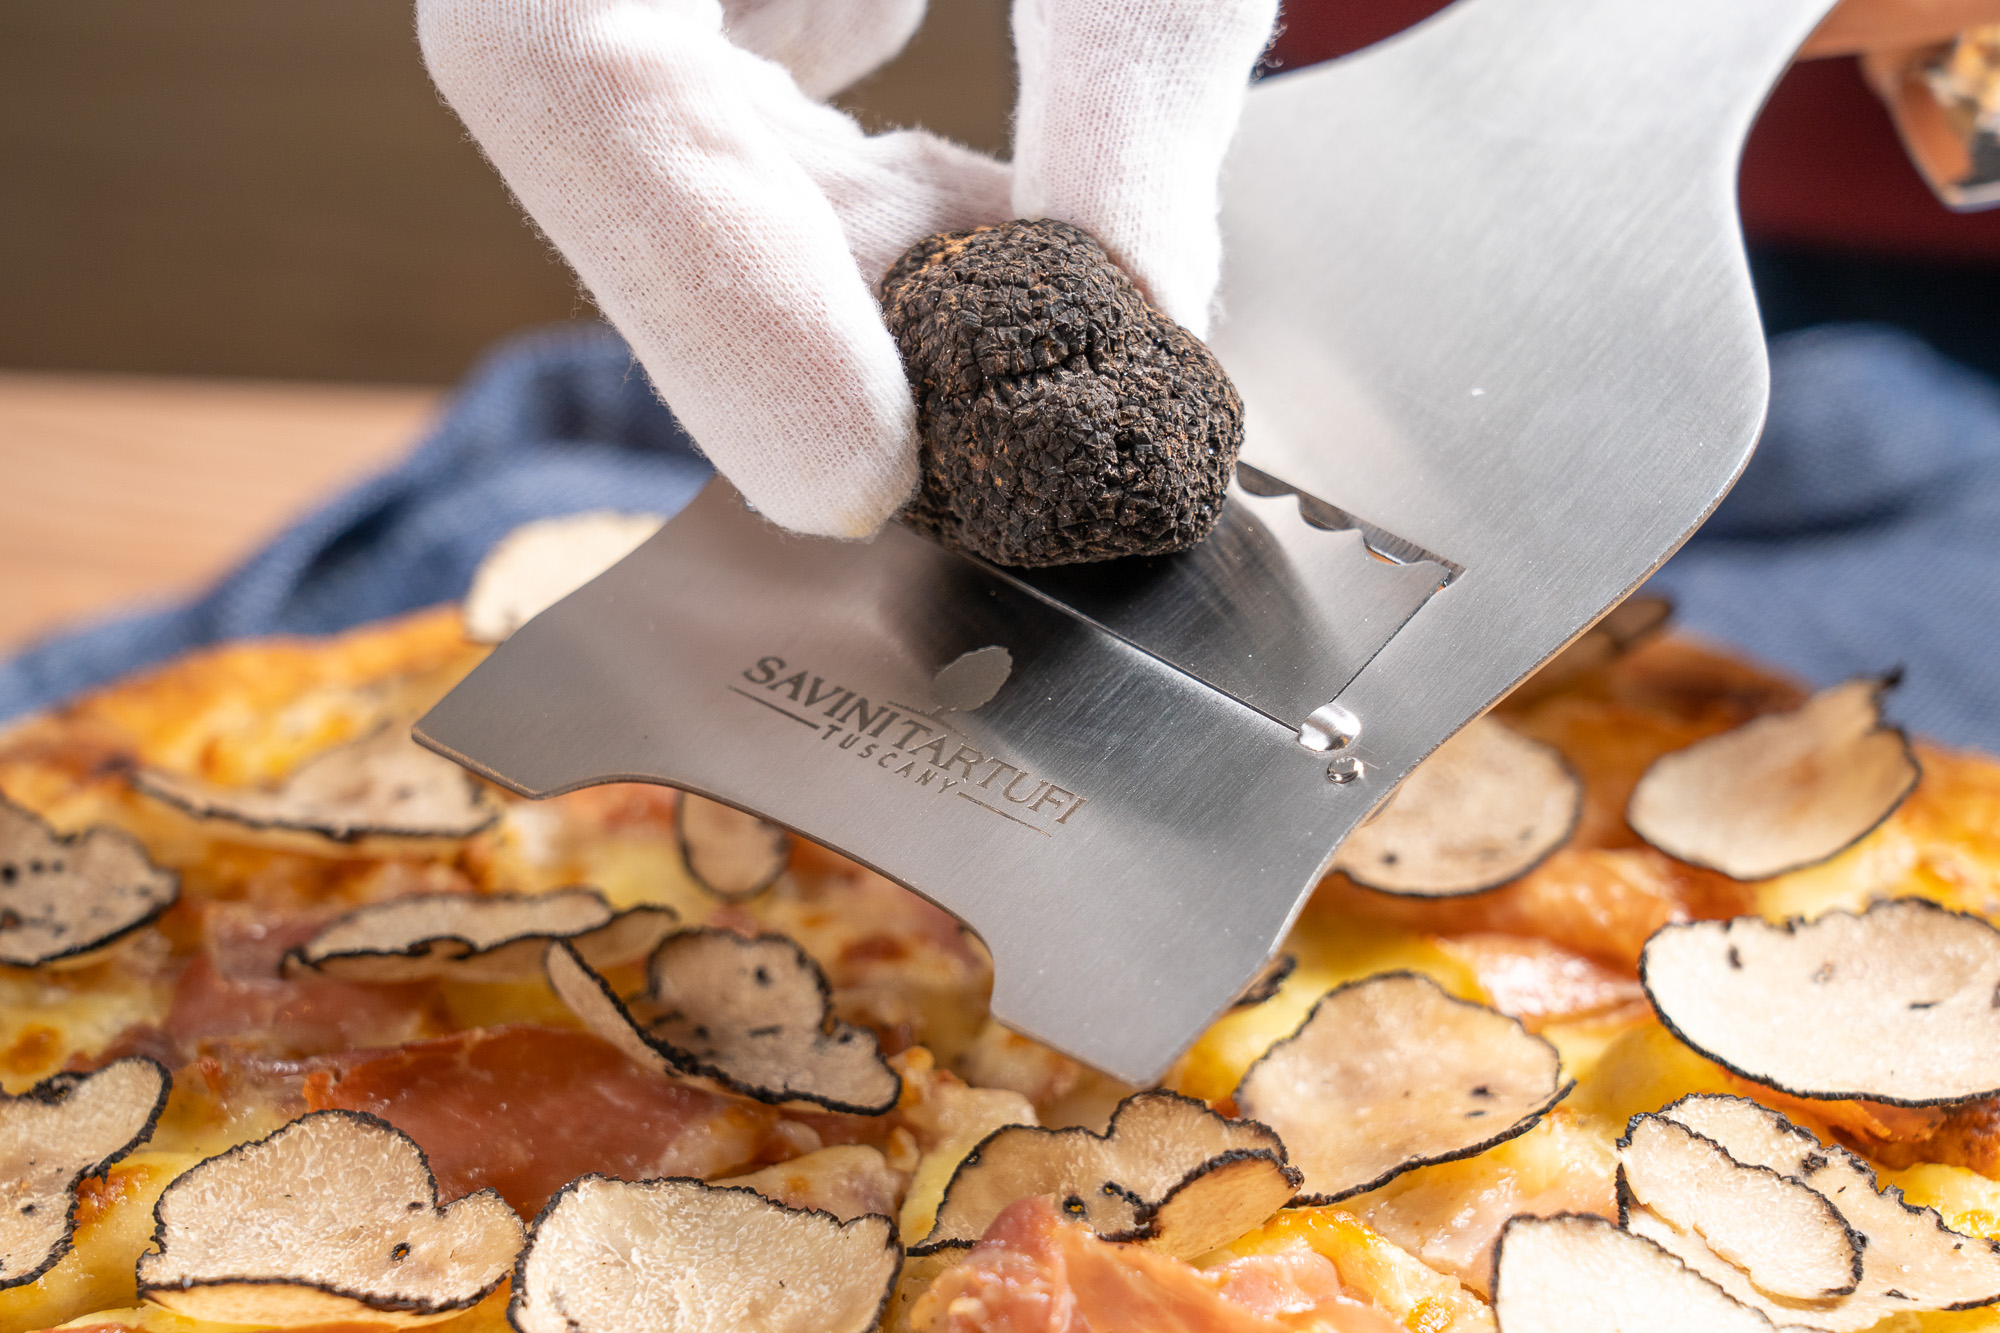 Add a whole fresh truffle for $268